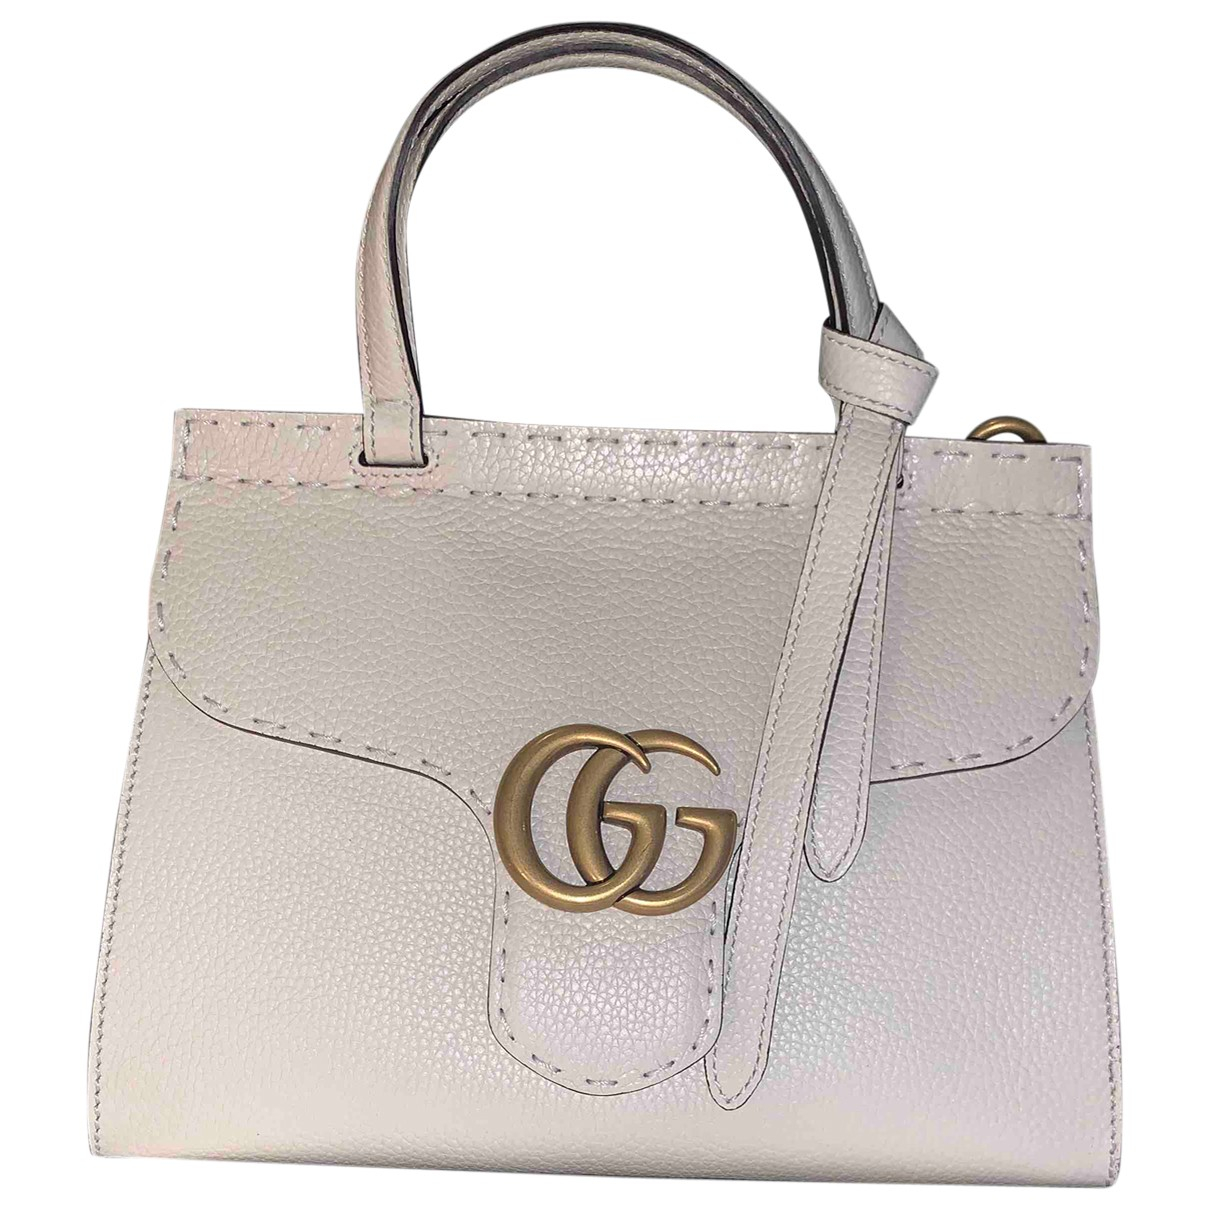 Gucci Marmont White Leather handbag for Women \N